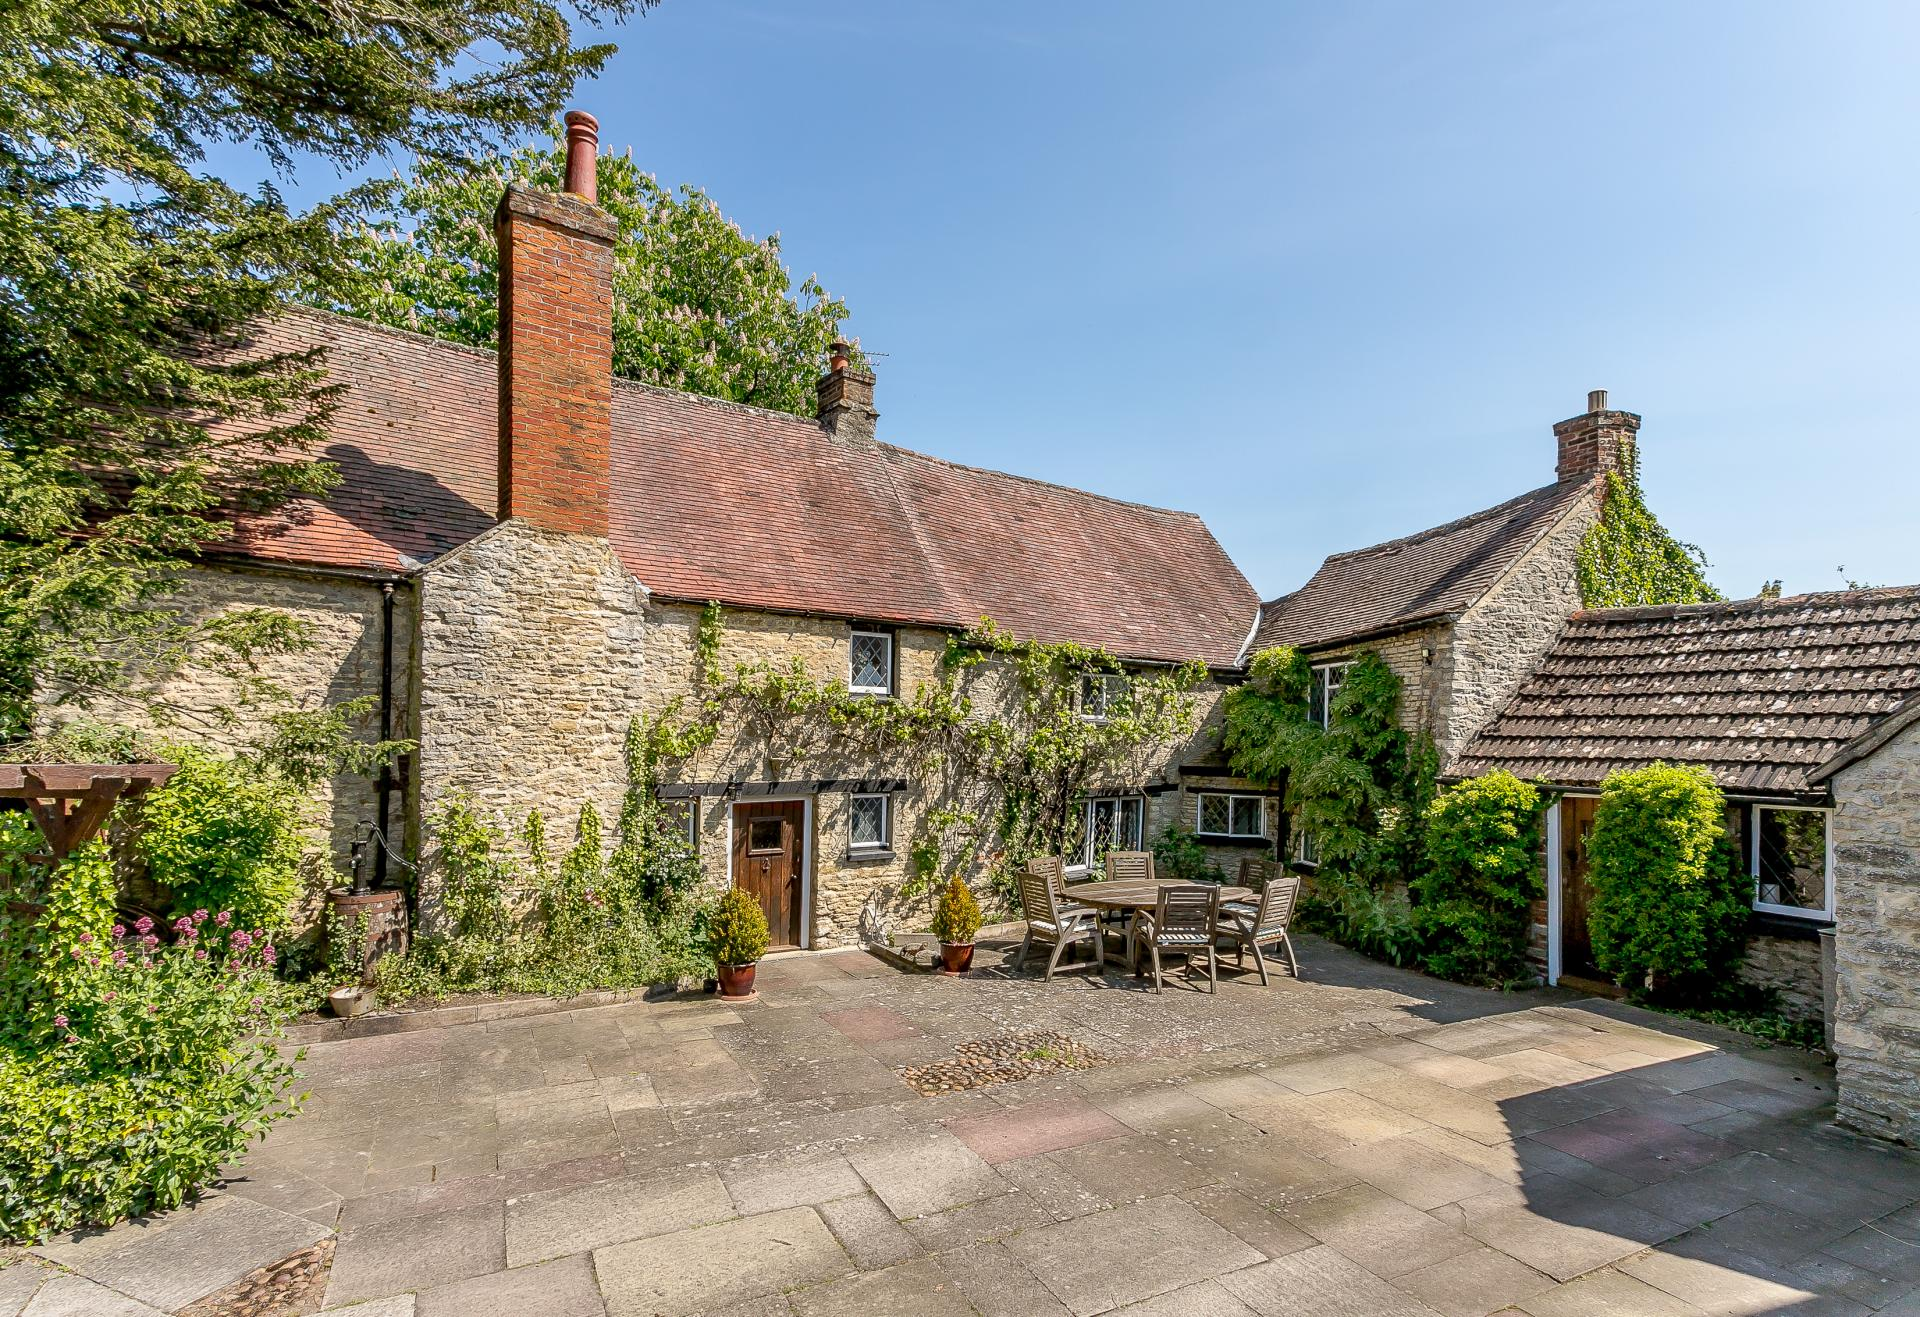 oxfordshire village leafy stone farmhouse cottage.jpg